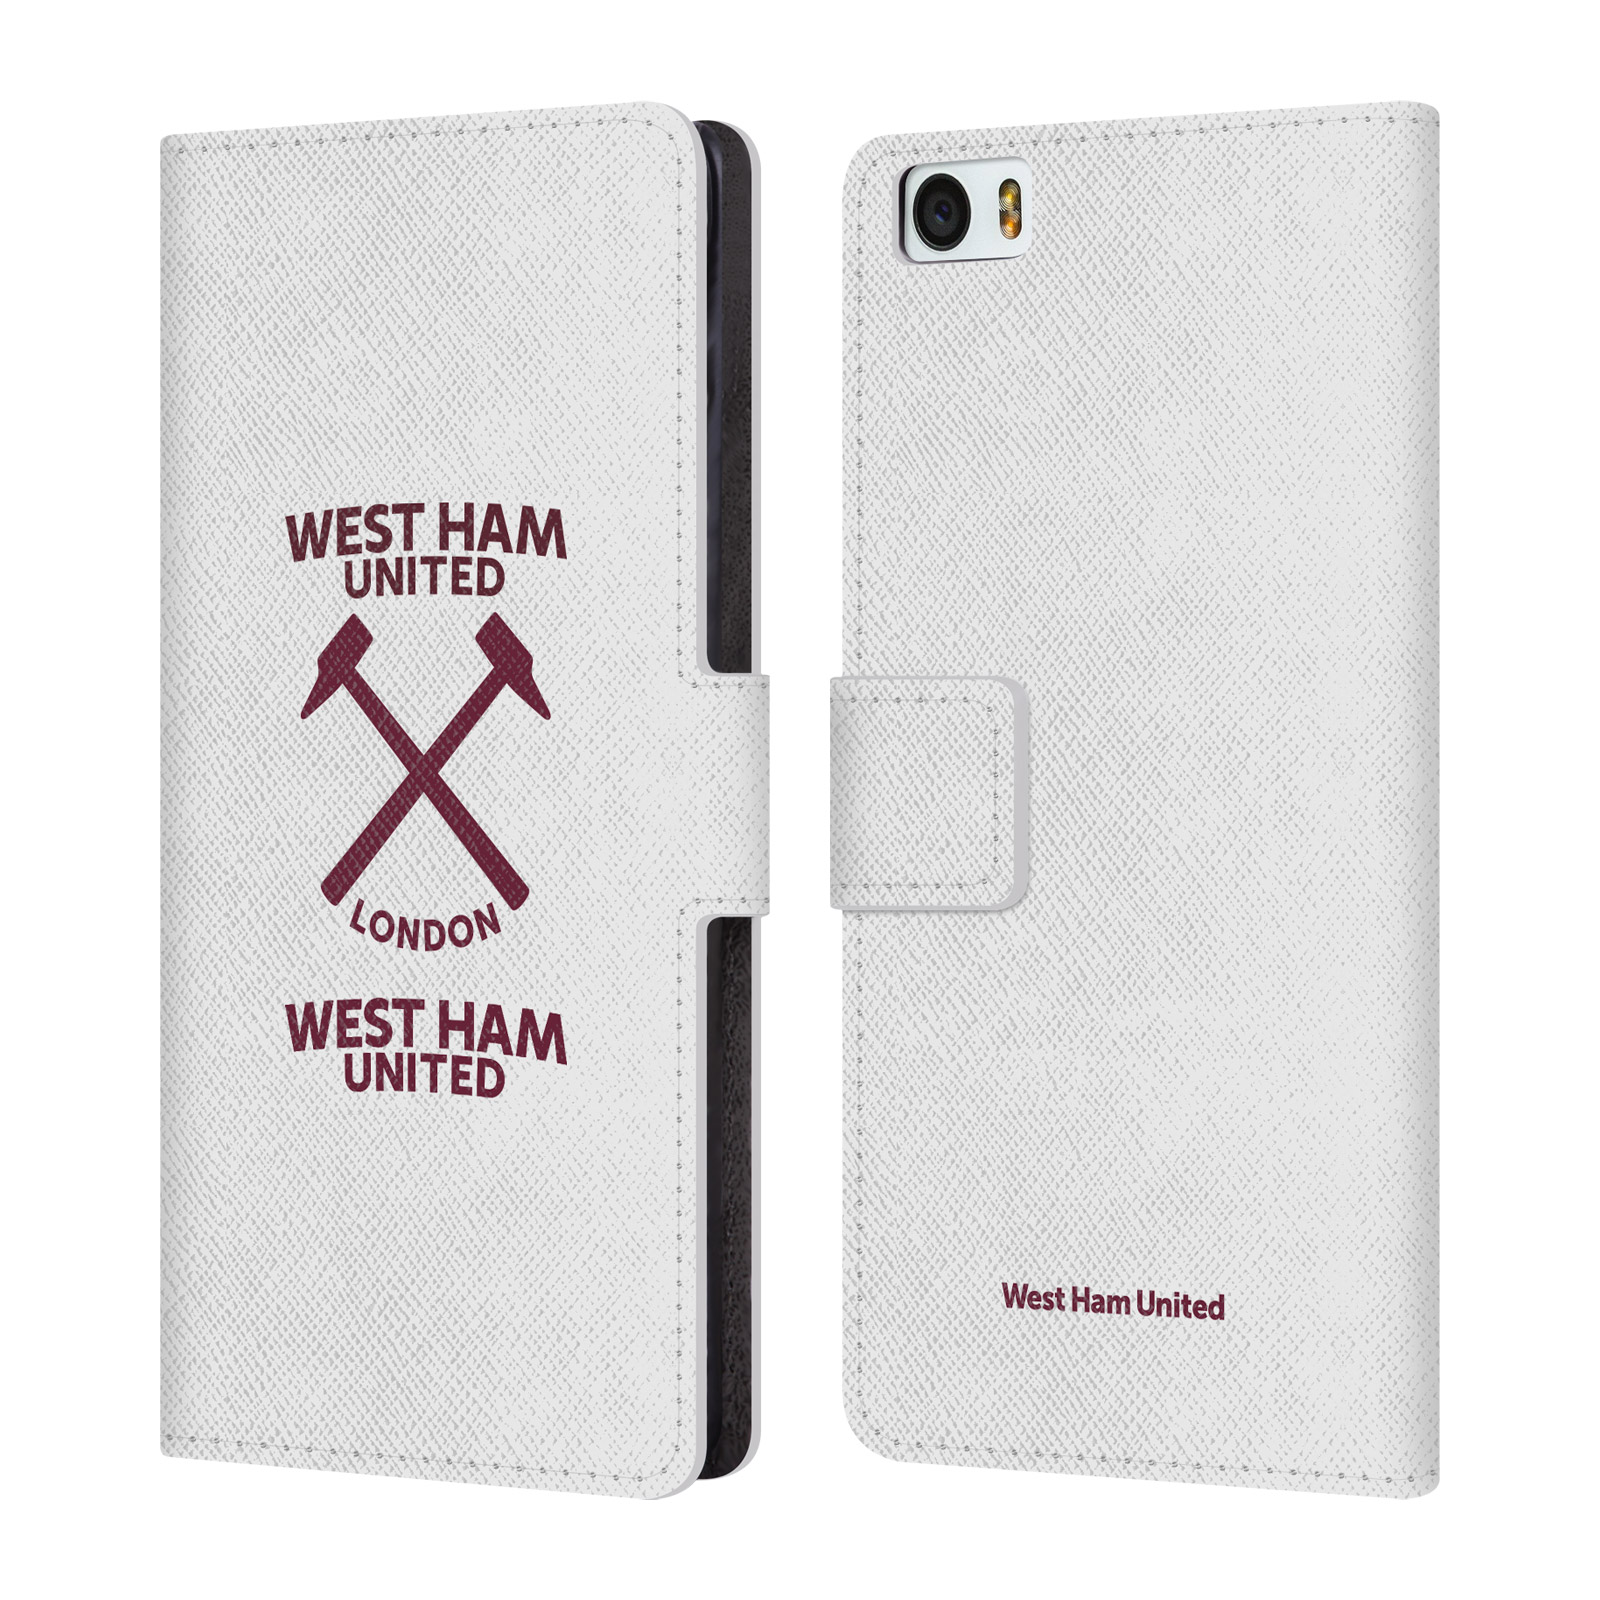 WEST-HAM-UNITED-FC-2016-17-HAMMER-MARQUE-KIT-LEATHER-BOOK-CASE-FOR-XIAOMI-PHONES